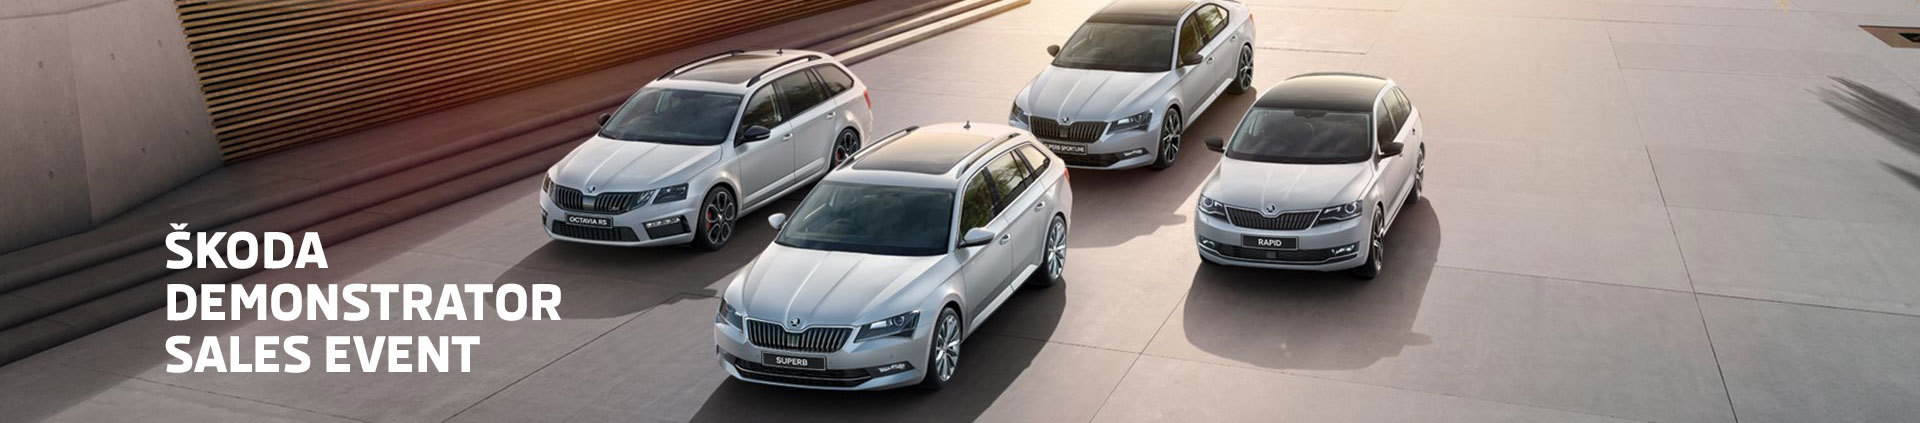 Skoda - National Offer - The Demonstrator Sales Event